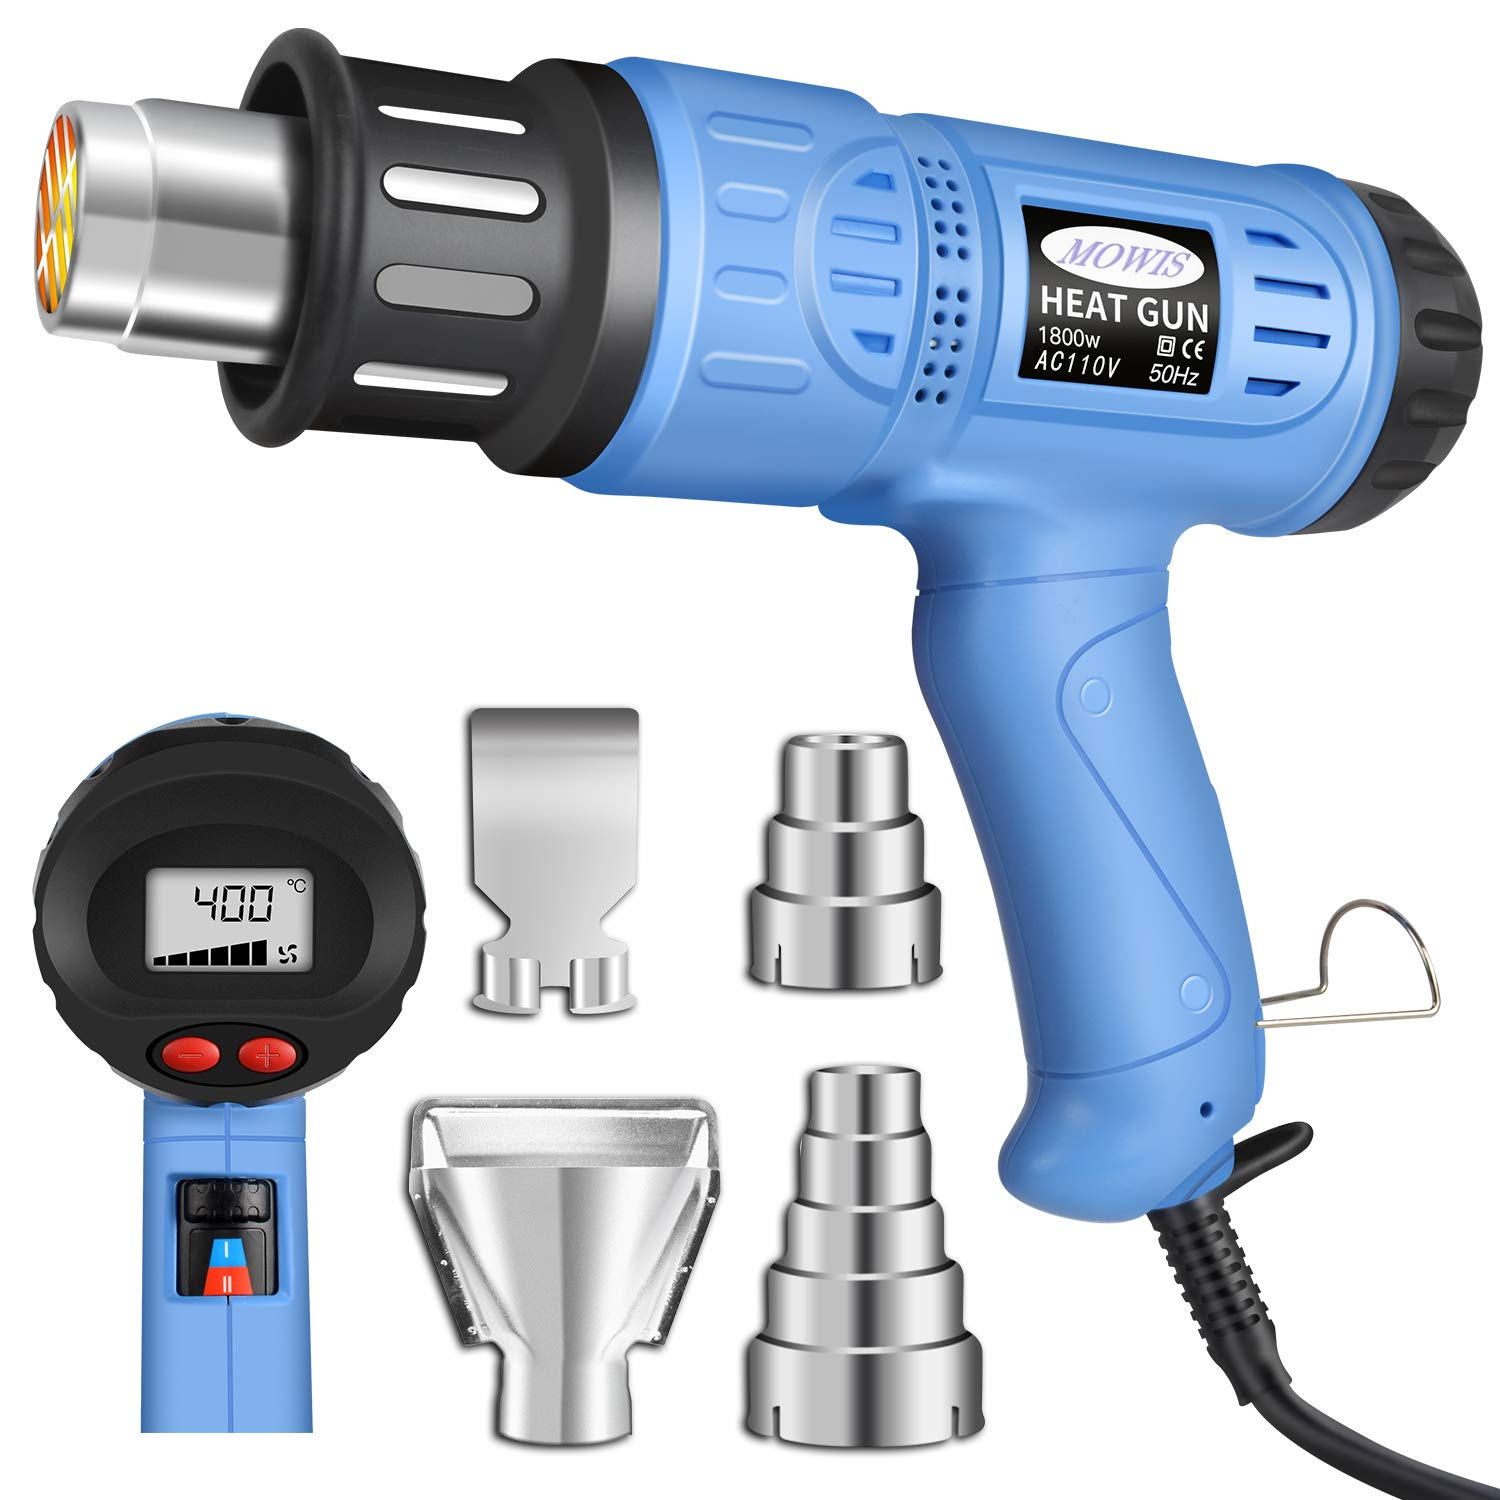 Heat Gun, Mowis 1800W Heavy Duty Hot Air Shrink Gun with LCD Display, Temperature and Wind Speed Adjustable by Mowis